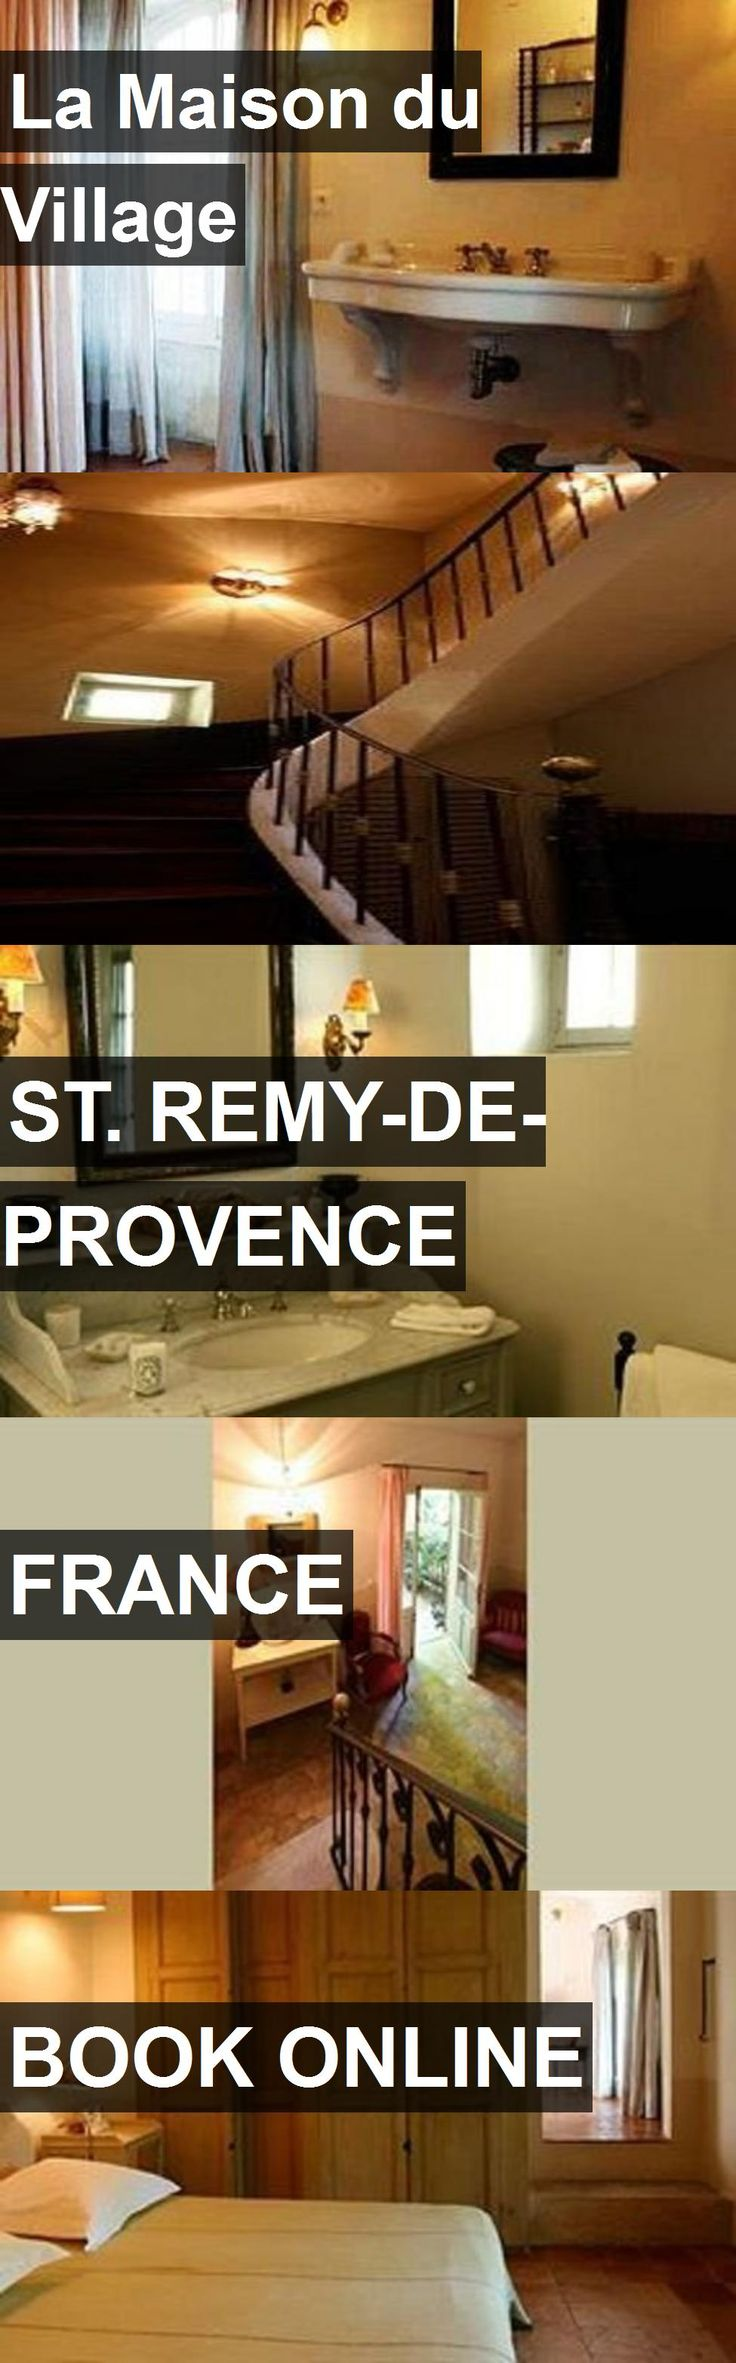 Hotel La Maison du Village in St. Remy-de-Provence, France. For more information, photos, reviews and best prices please follow the link. #France #St.Remy-de-Provence #travel #vacation #hotel